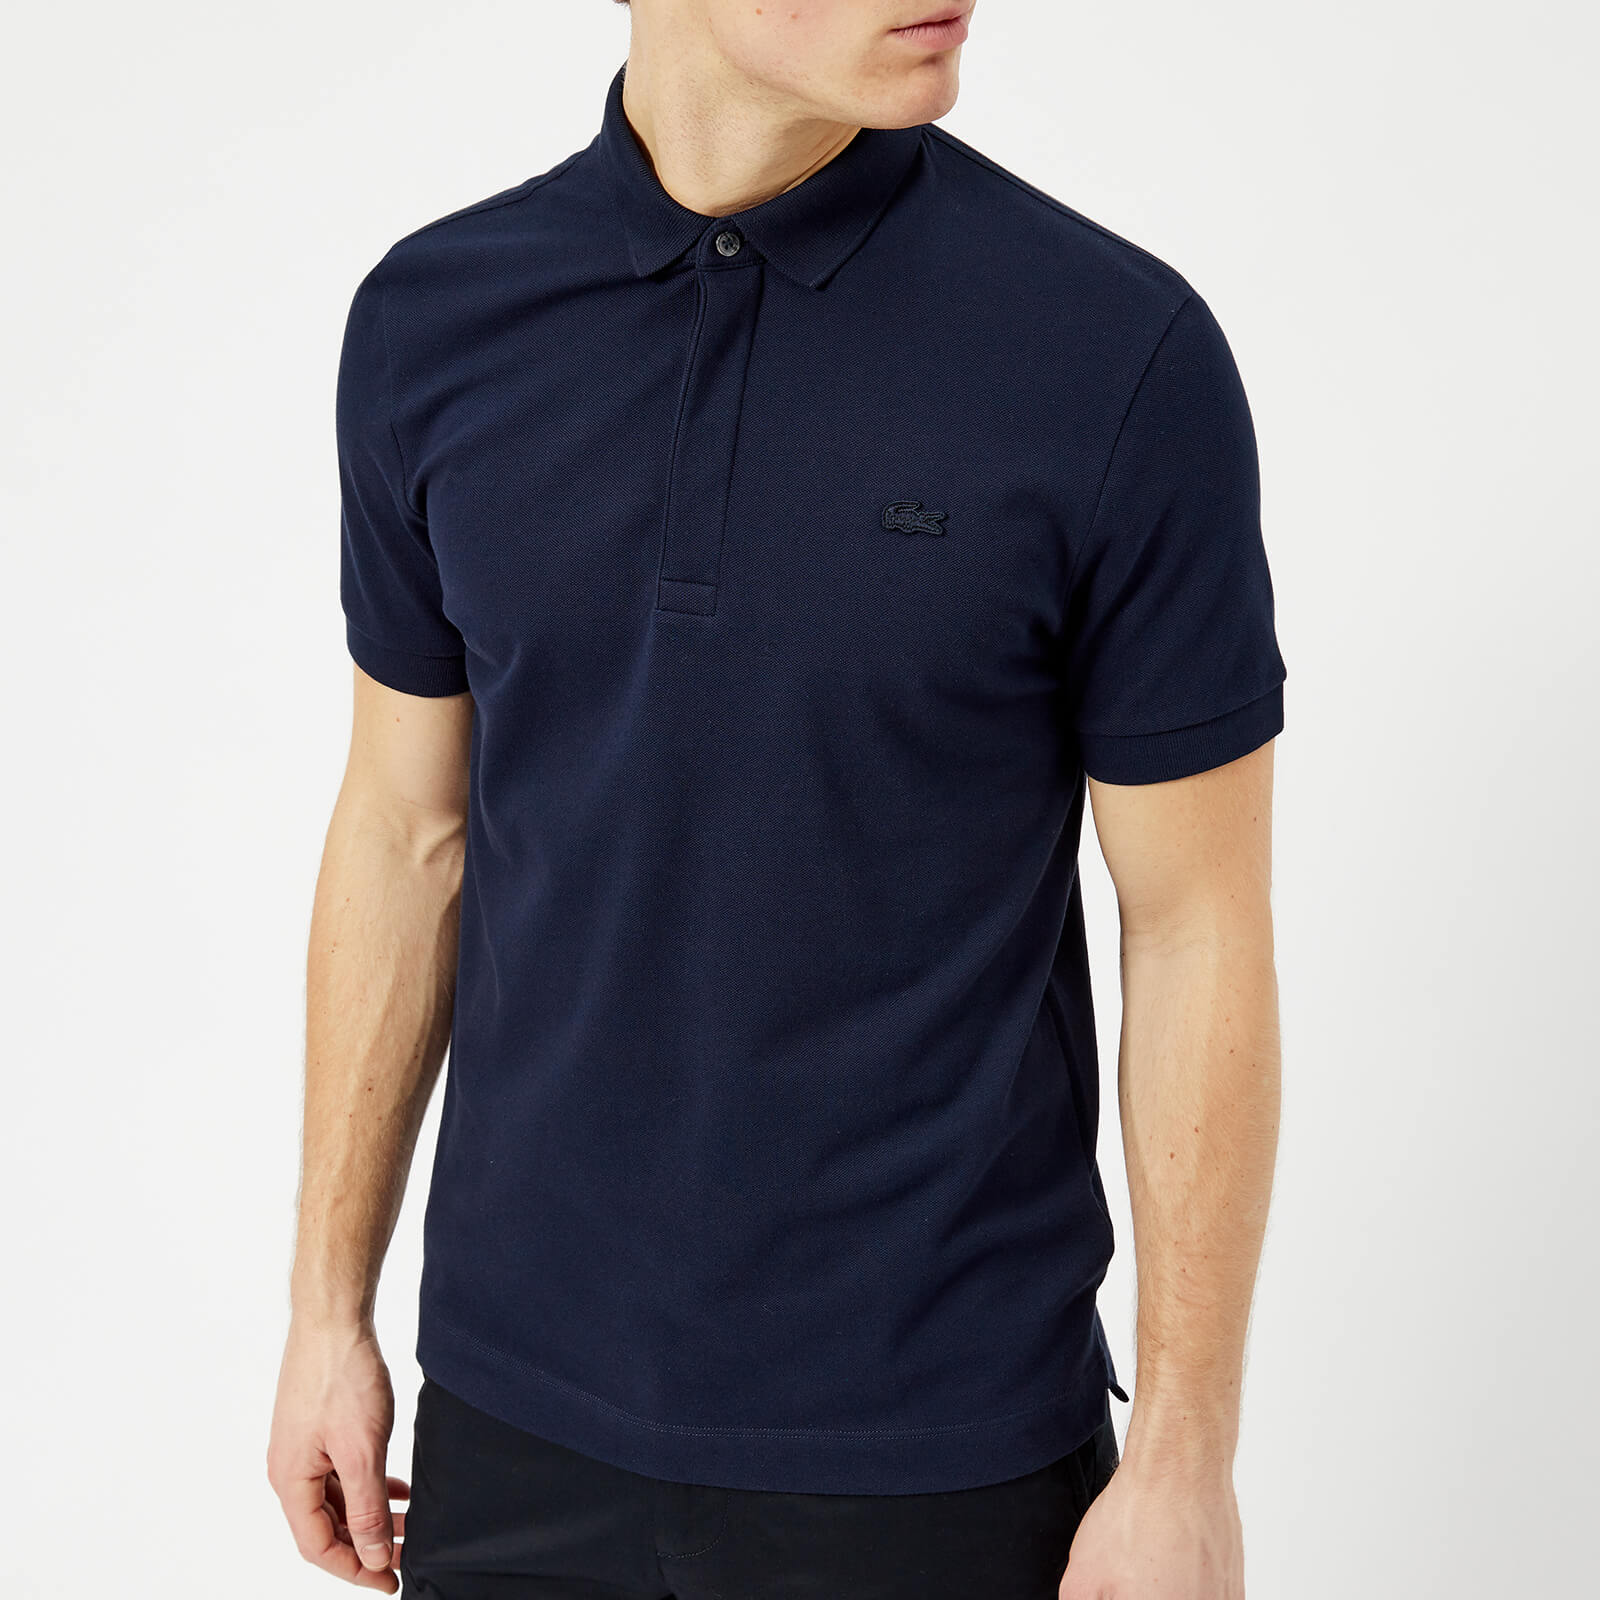 e10eb2e8845392 Lacoste Men's Short Sleeve Paris Polo Shirt - Navy Clothing | TheHut.com